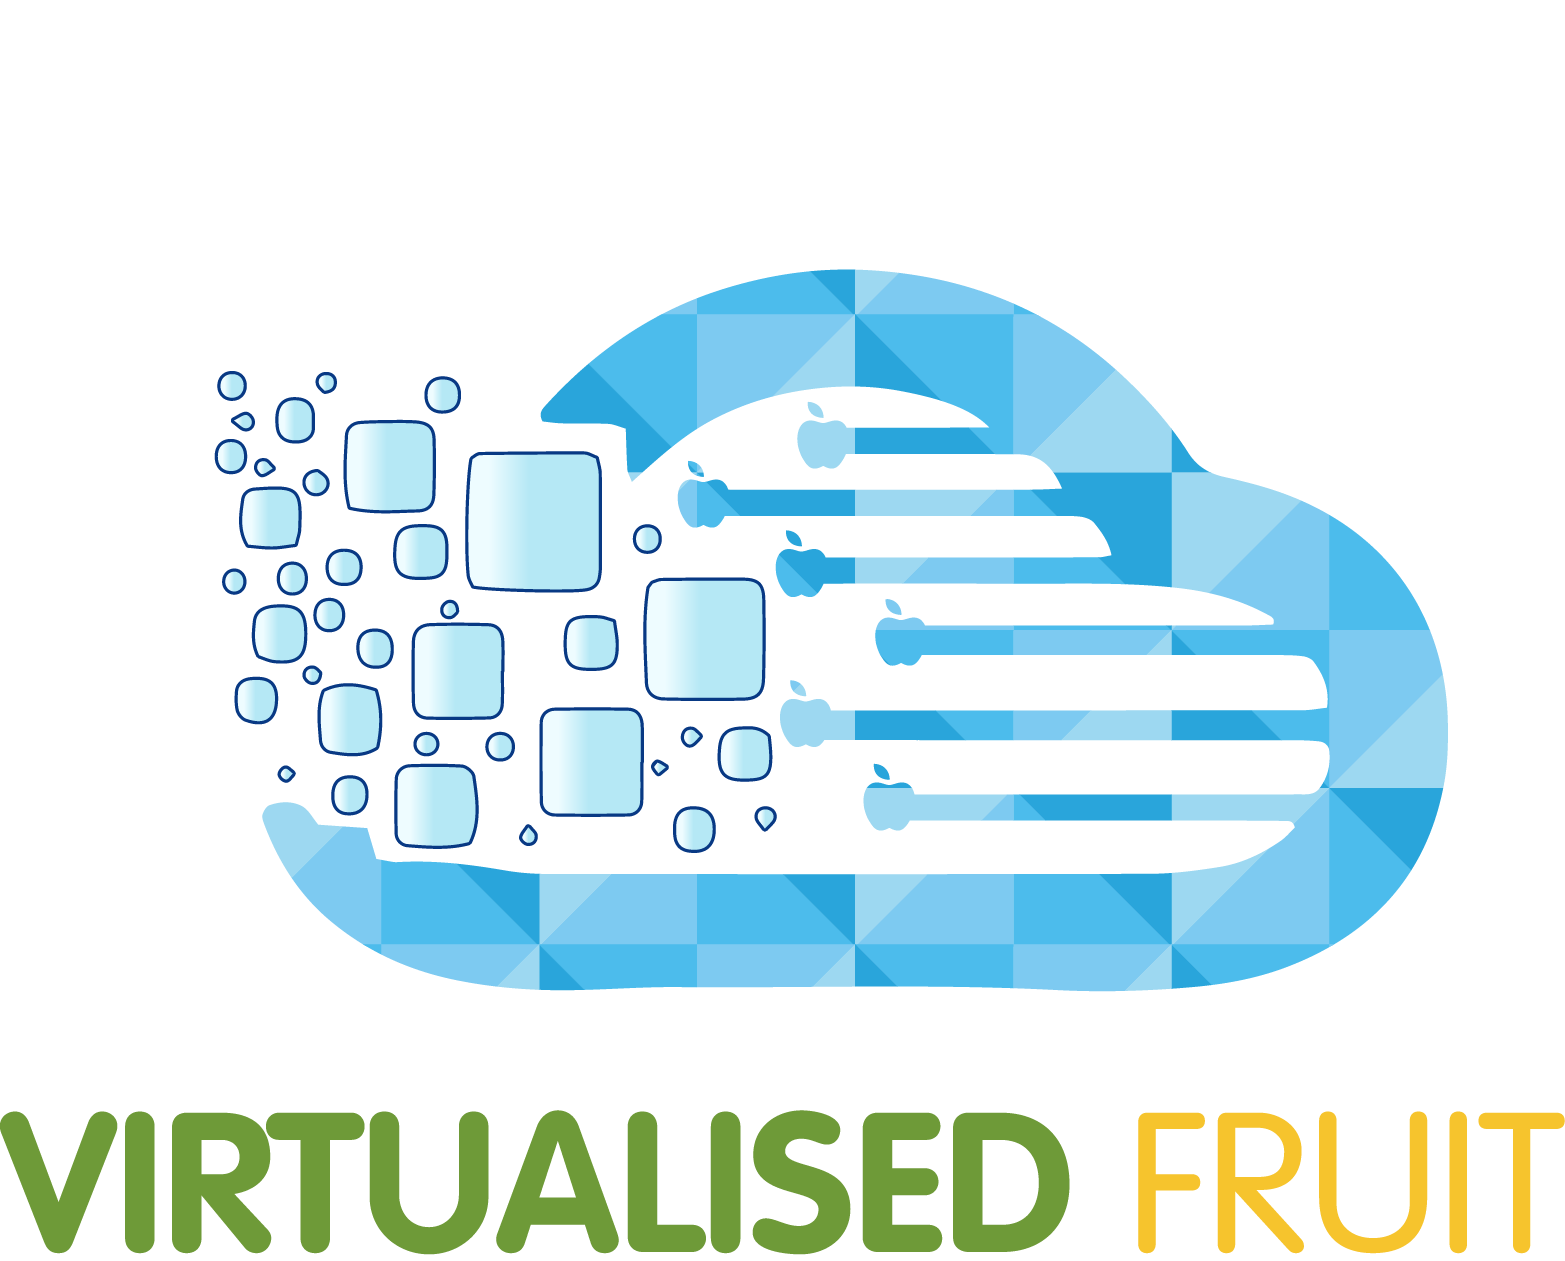 Virtualised Fruit